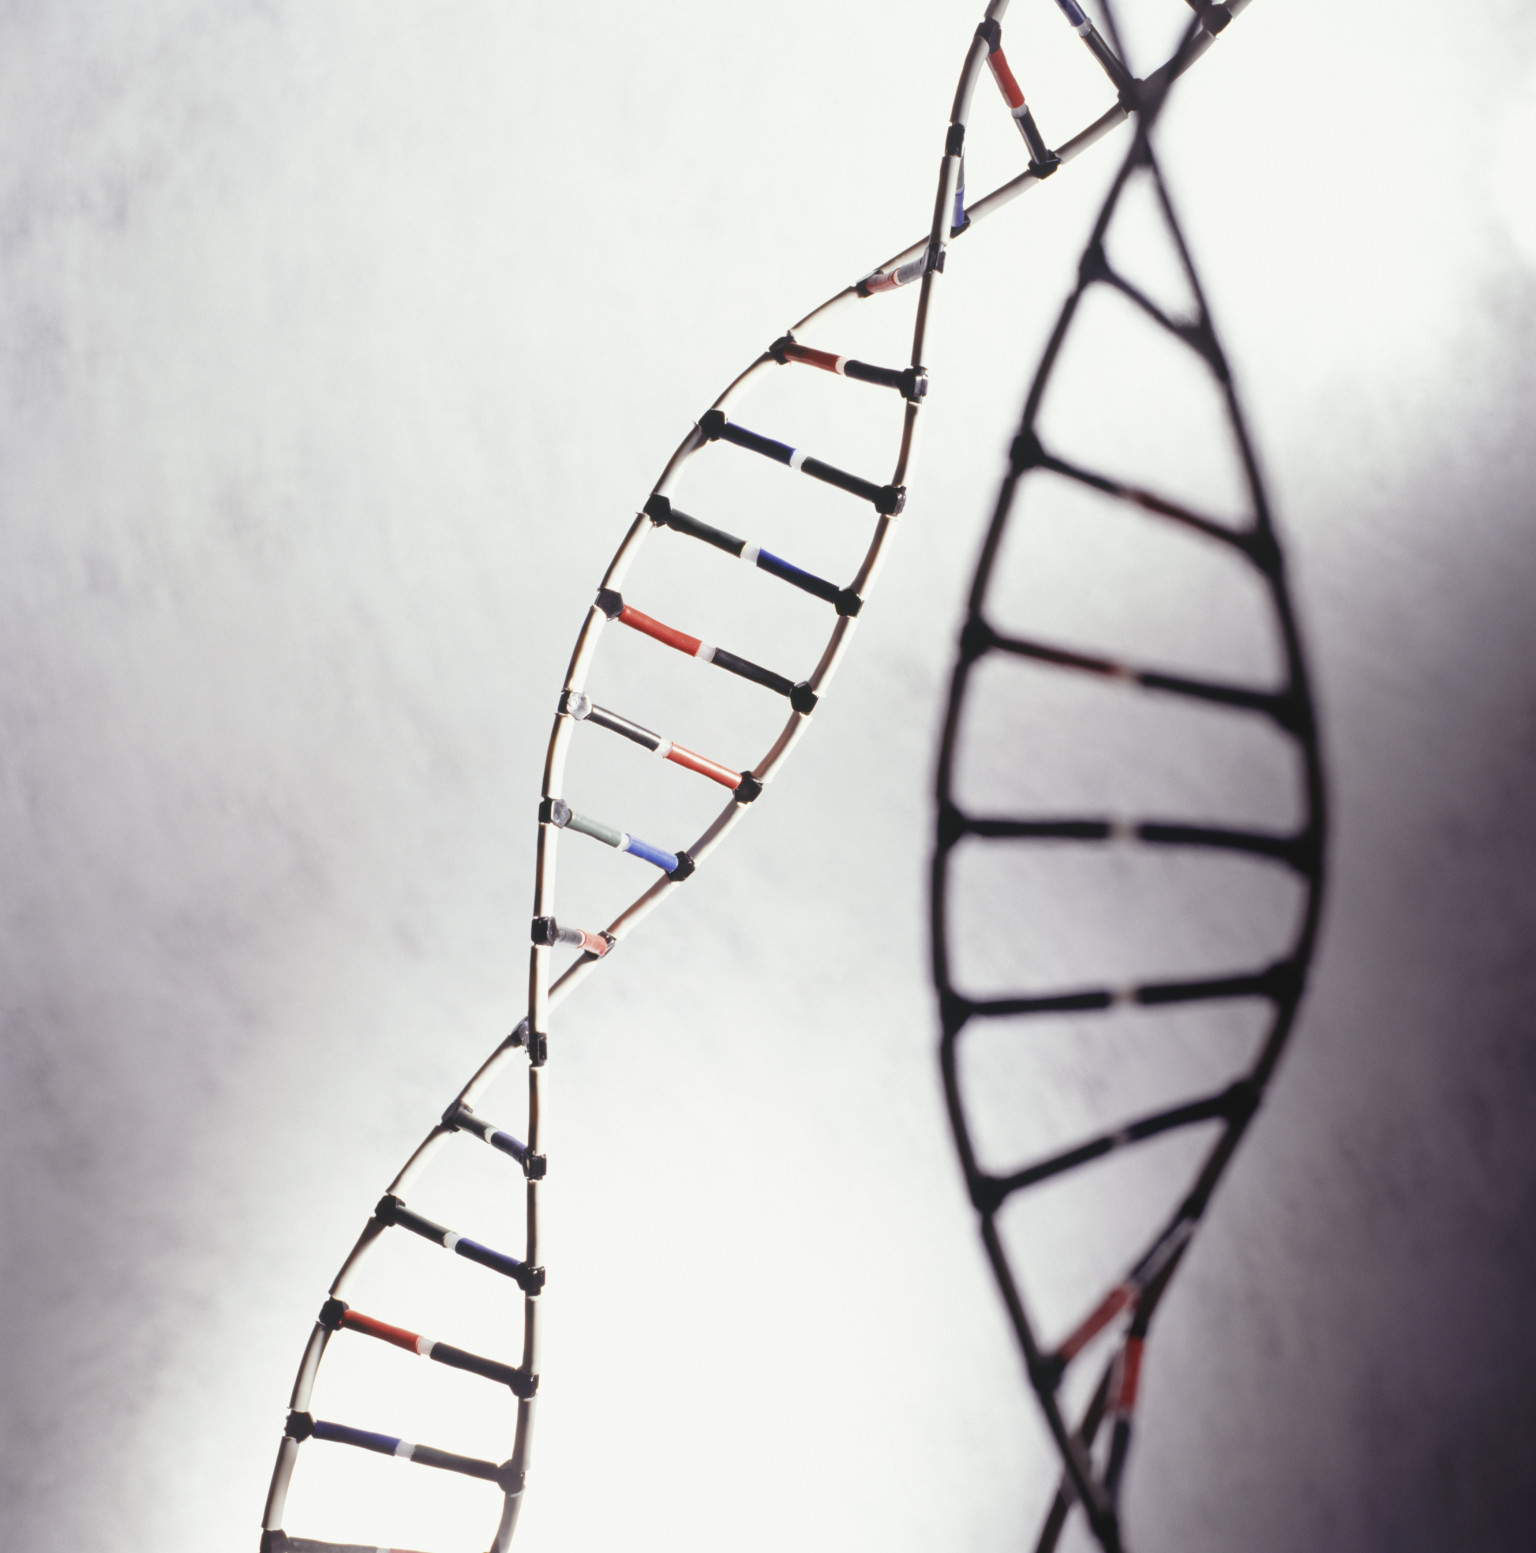 """an analysis of the relationship between criminal behavior and genetics Criminologist's research shows genes influence criminal behavior  a behavior genetic analysis"""" detailed the  connections between genes and an individual ."""